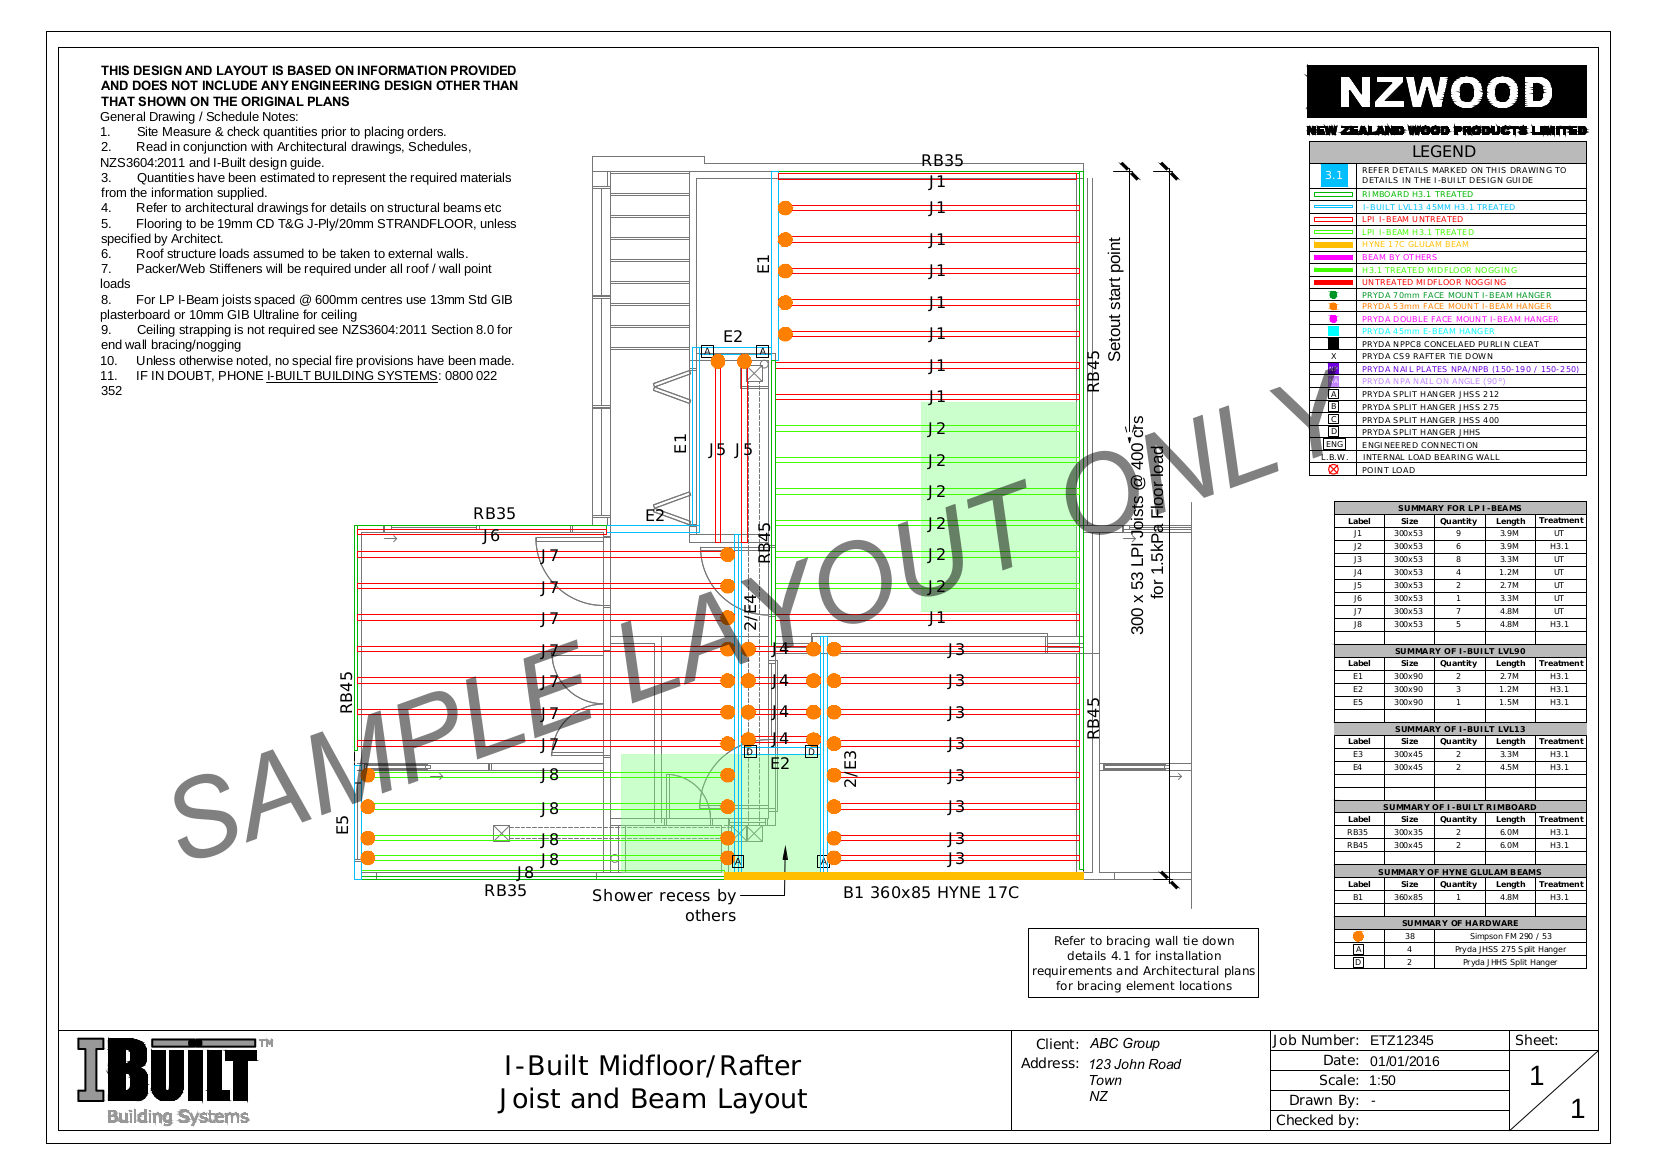 New Zealand Wood Products Limited New Zealand Wood Products Limited